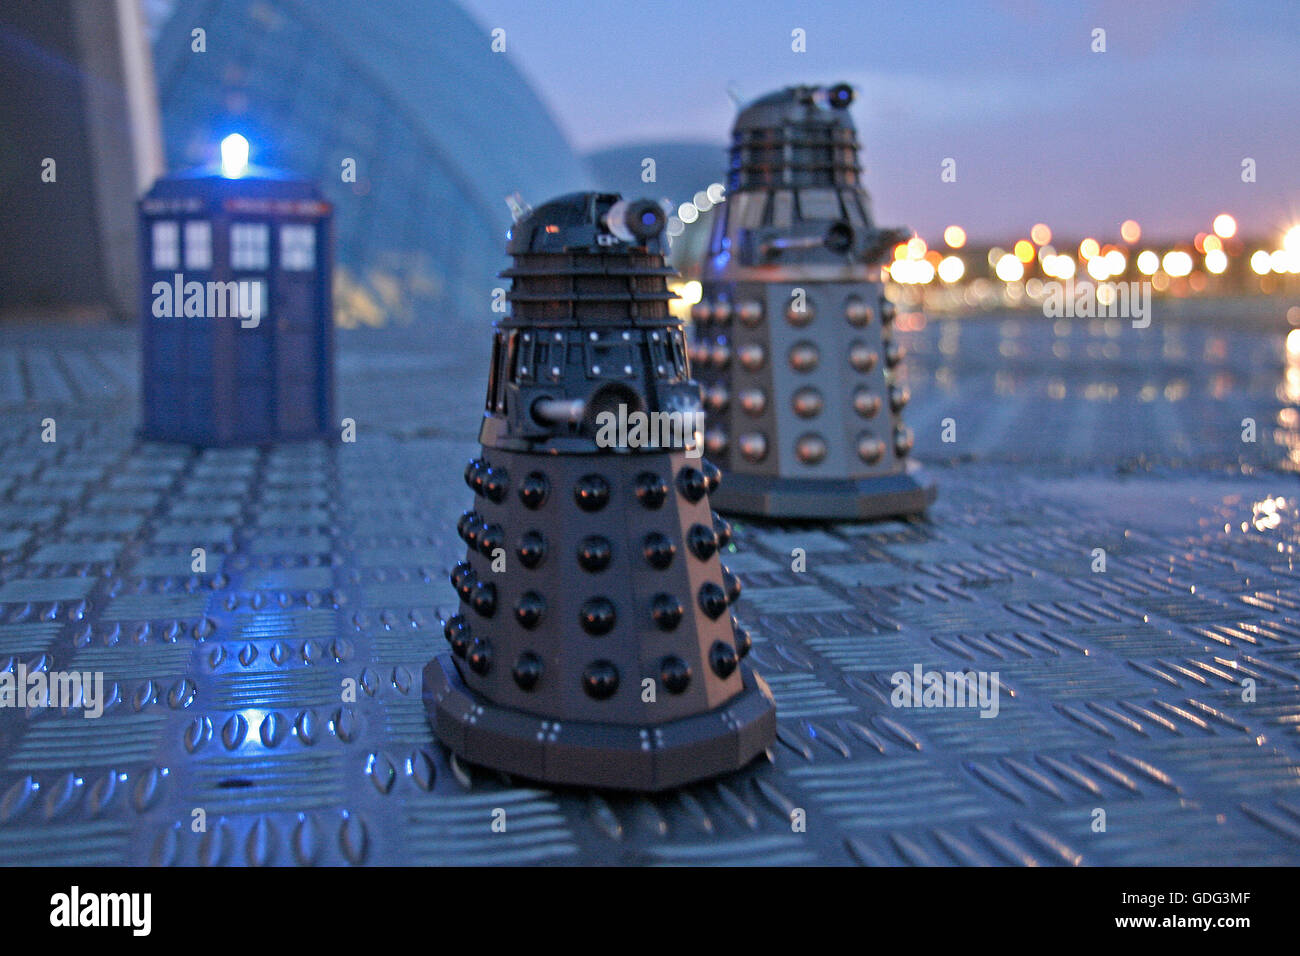 Daleks at the Glasgow Science Centre - Stock Image